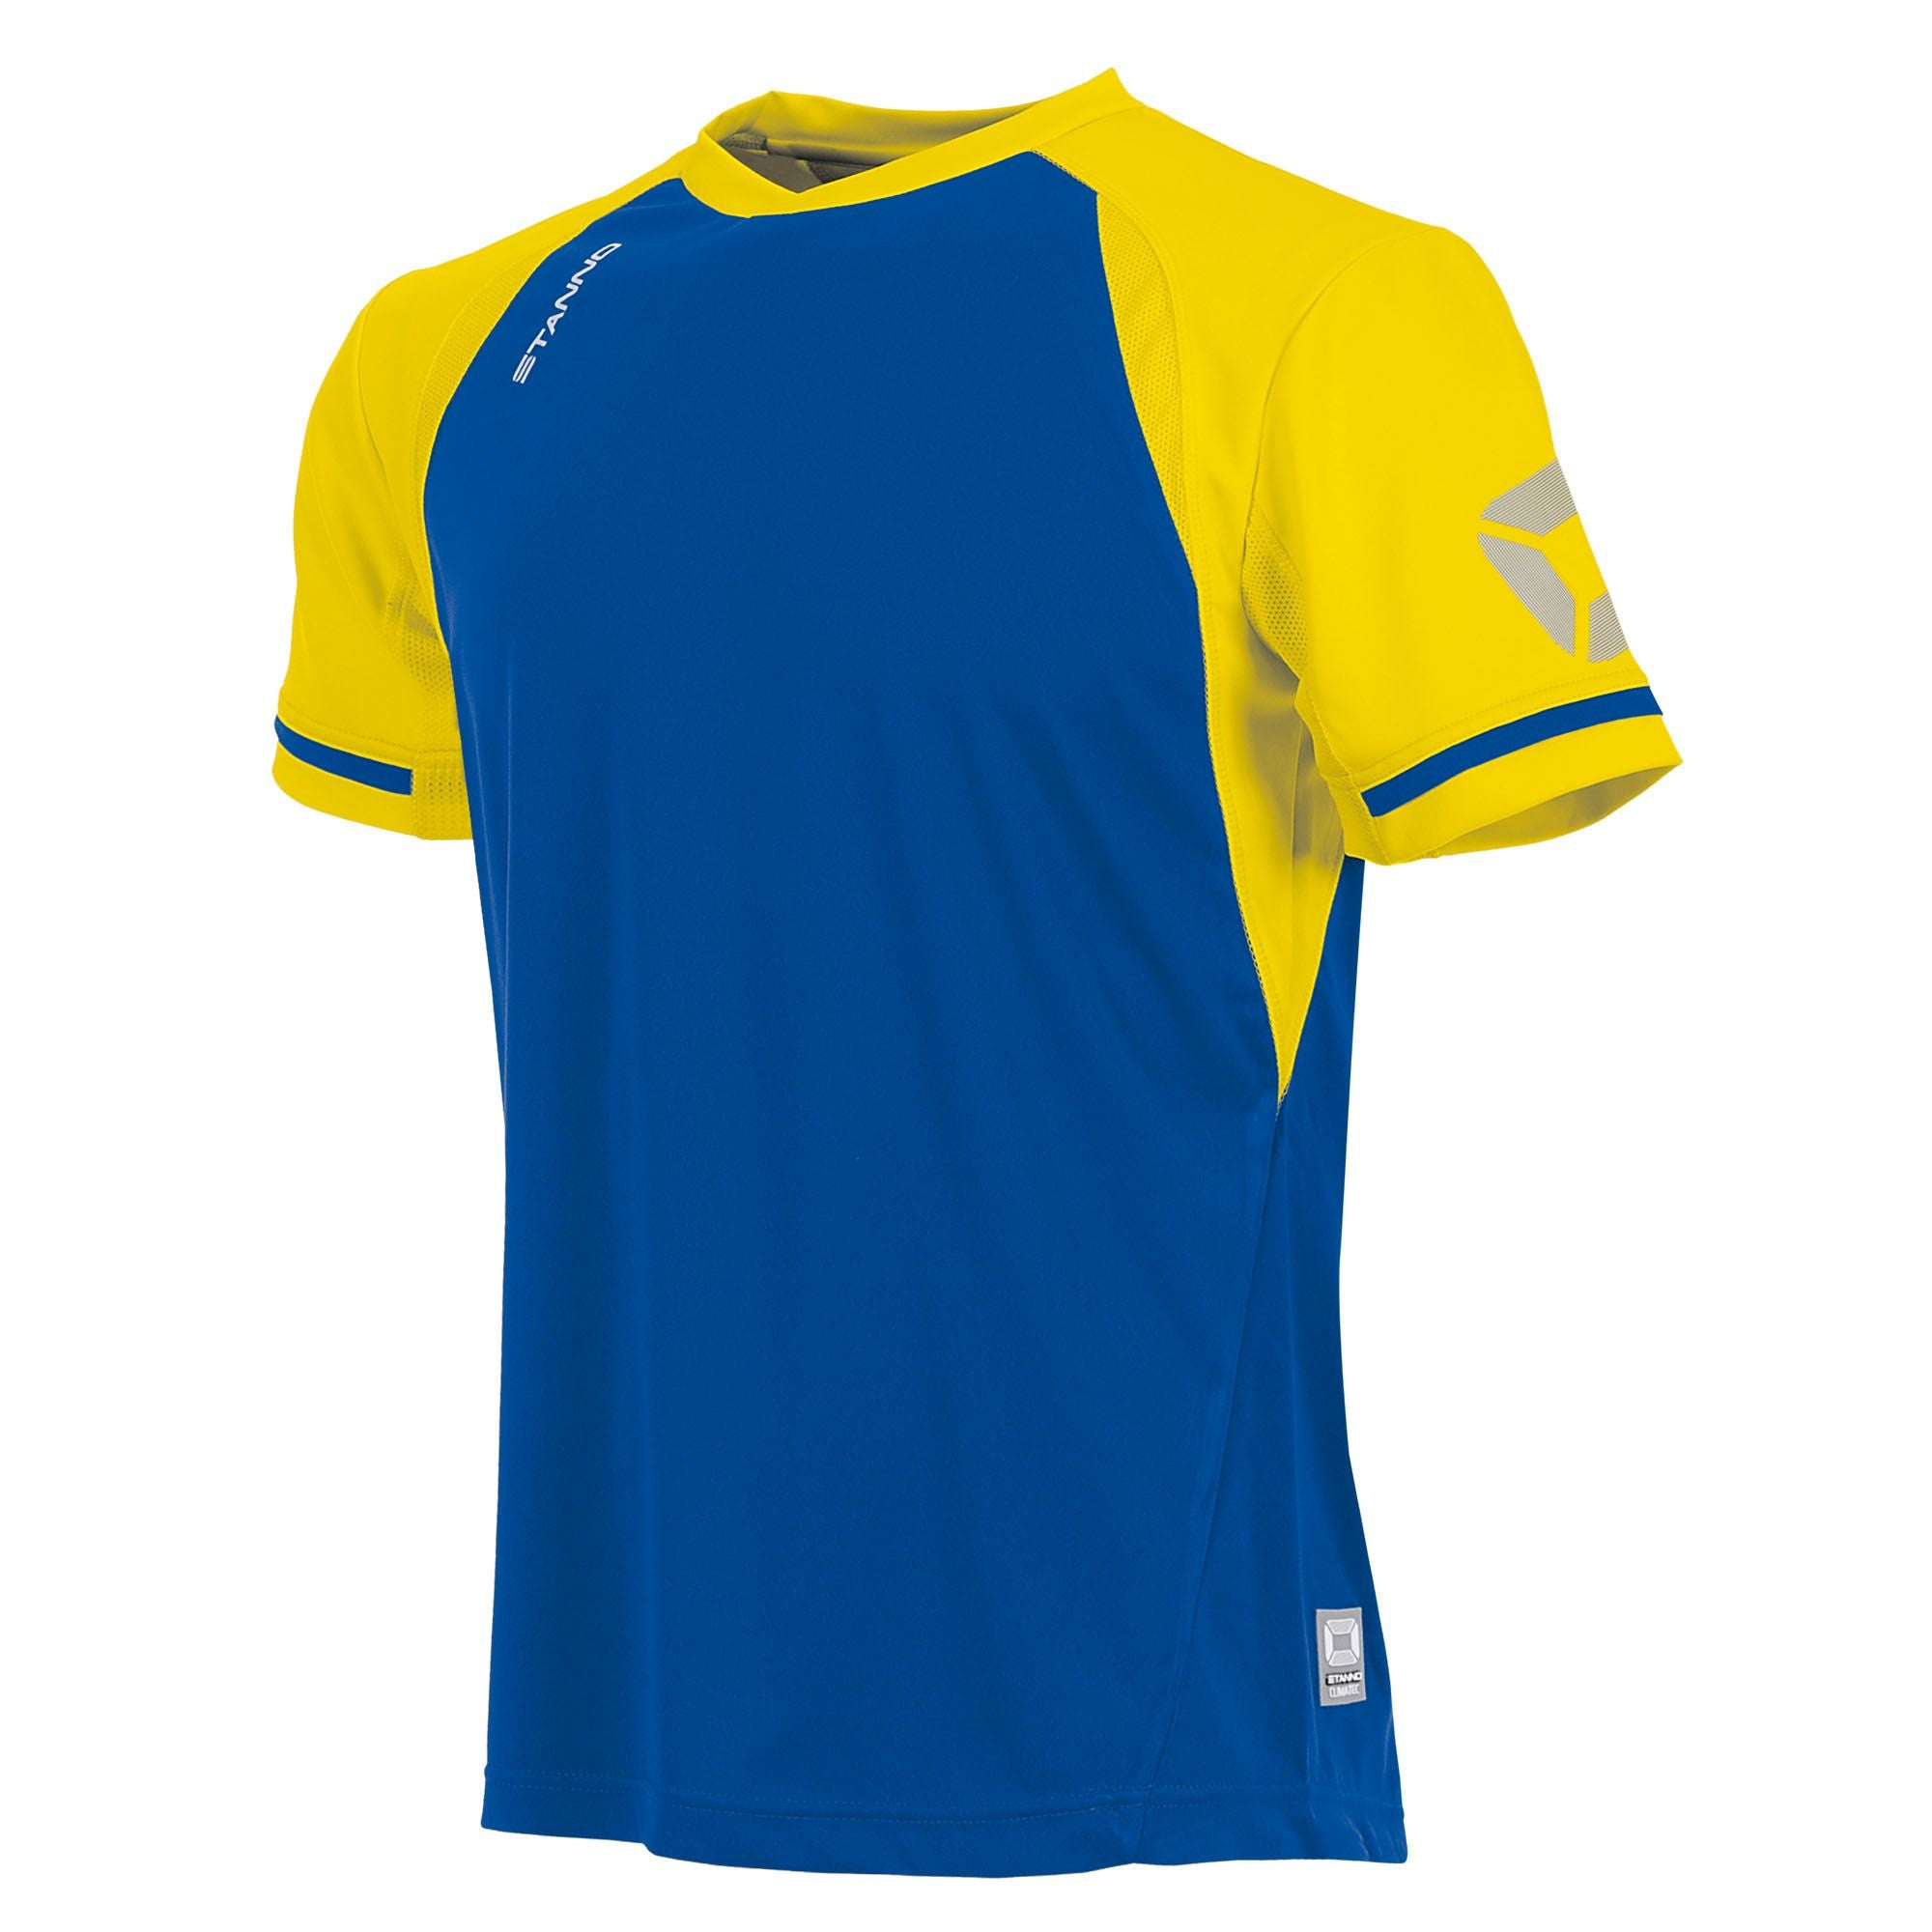 short sleeved Stanno Liga shirt in royal blue with contrast yellow sleeves and collar, Stadium logo on the sleeve.